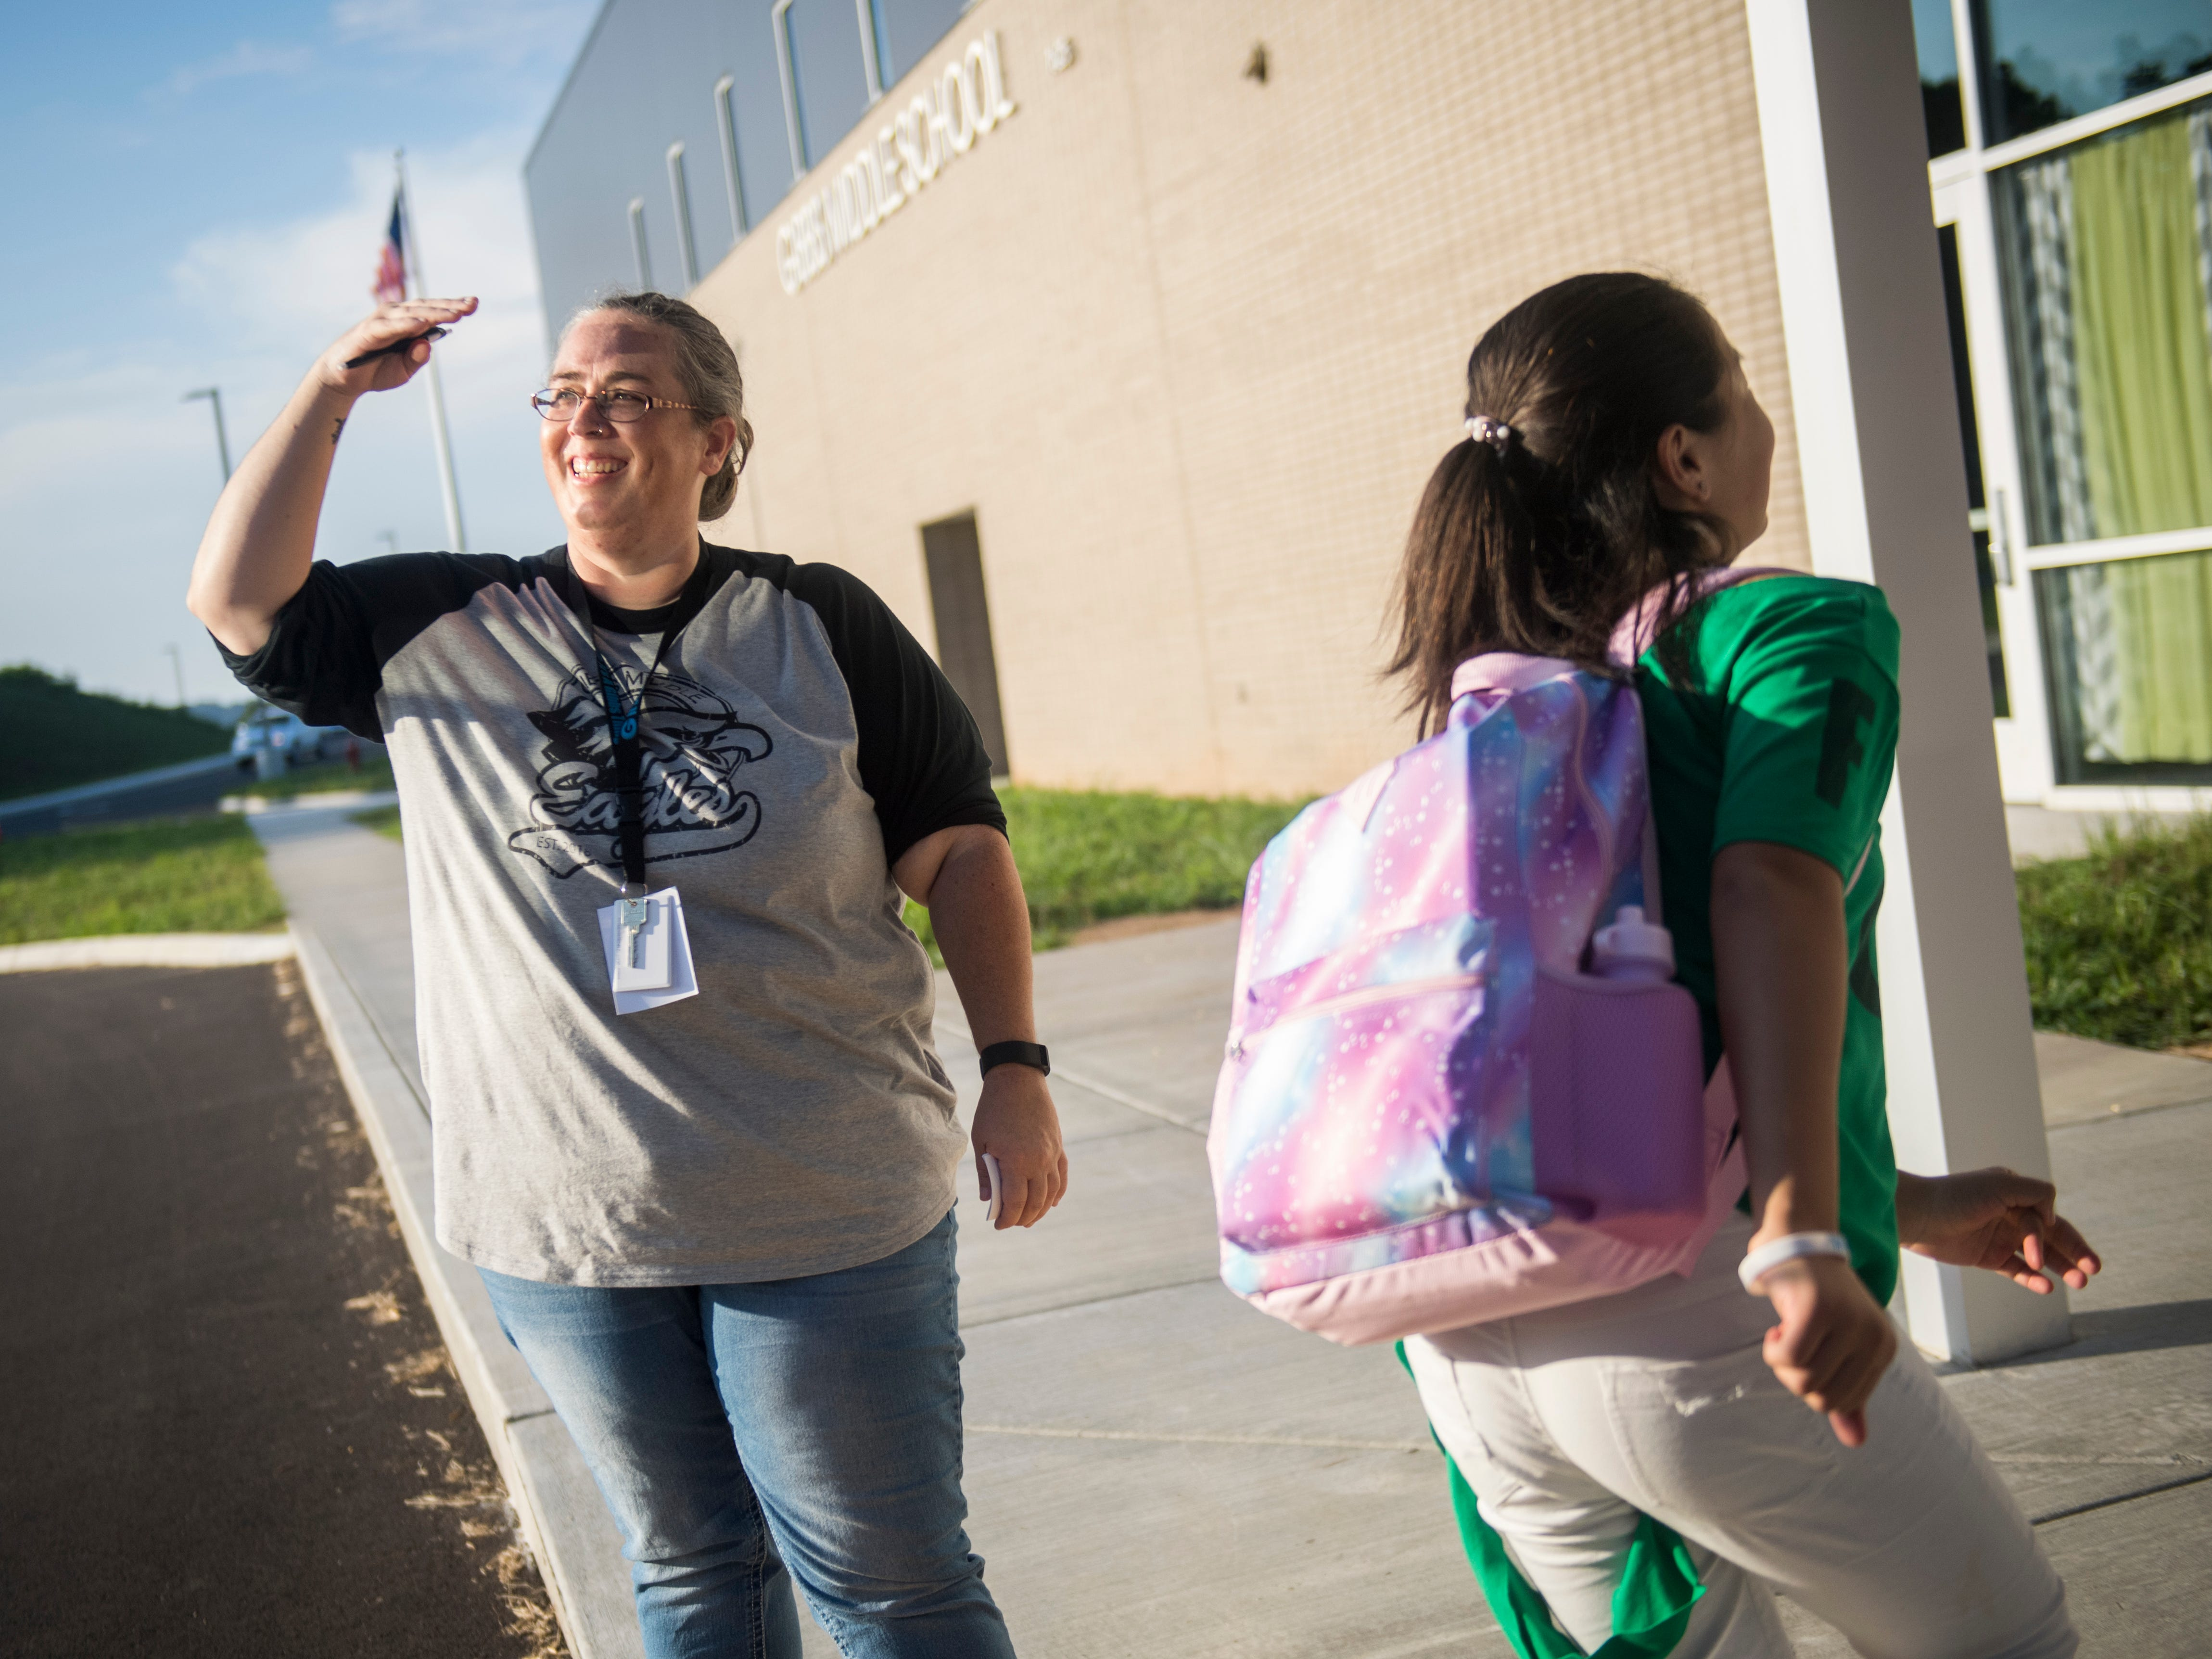 Sixth grade math teacher Jennifer Ewing, left, greets students as they step off the bus and enter the new Gibbs Middle School for the first day of school on Wednesday, August 8, 2018.